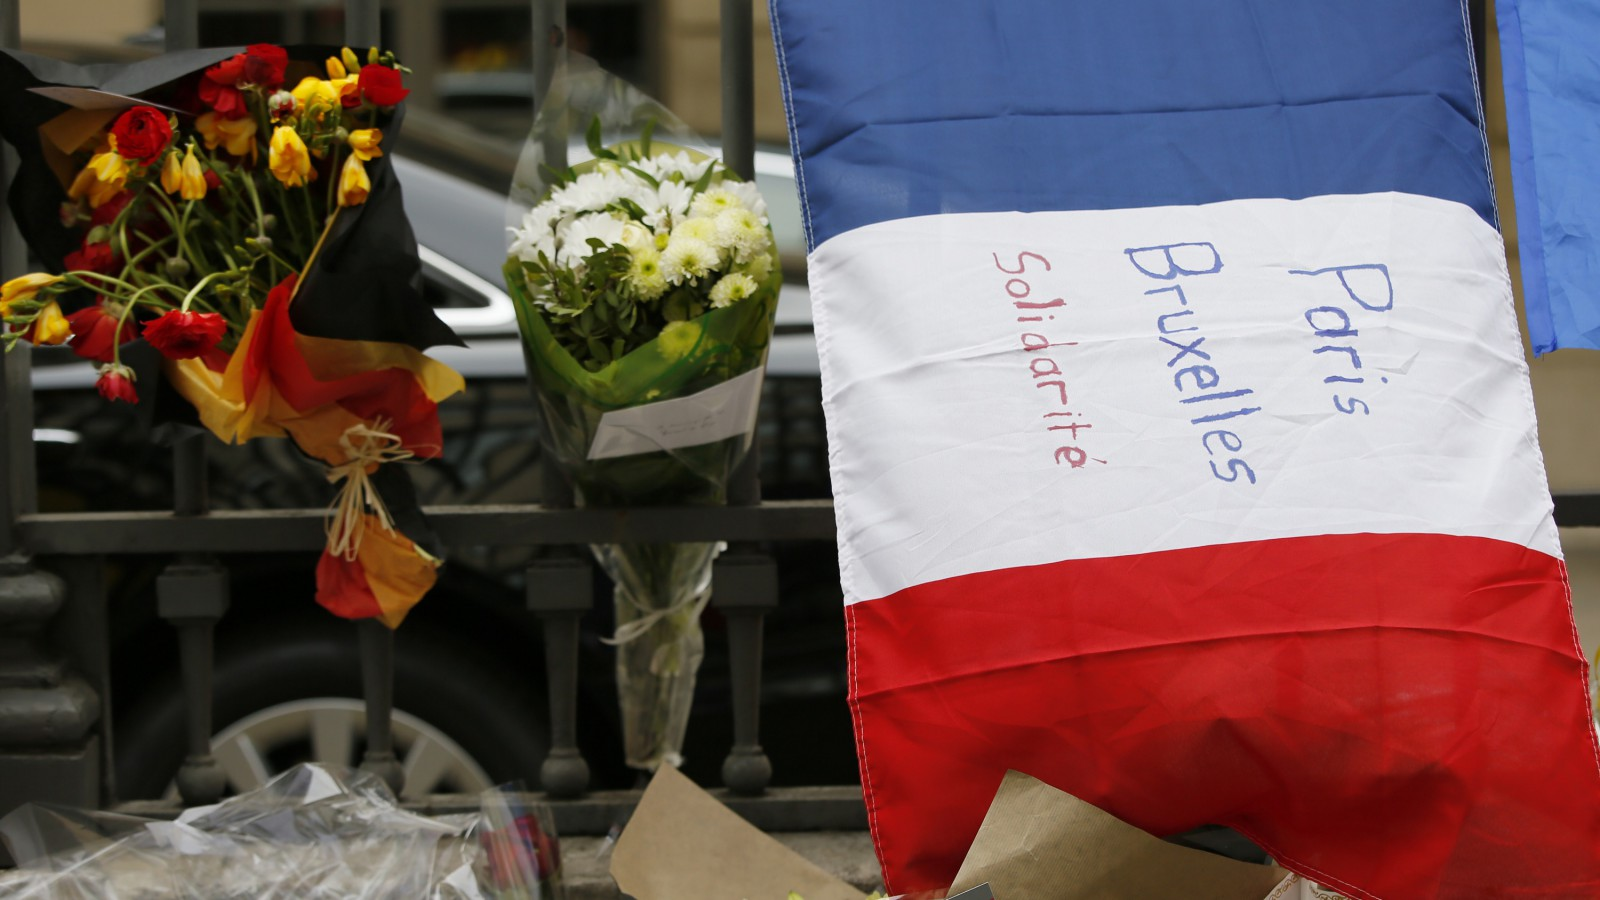 A French flag with the message 'Paris Brussels Solidarity' is displayed next to flowers with the colors of the Belgium flag in front of the Belgium embassy in Paris, France, March 23, 2016 in tribute to the victims of Tuesday's bomb attacks in Brussels.  REUTERS/Gonzalo Fuentes - RTSBUXV